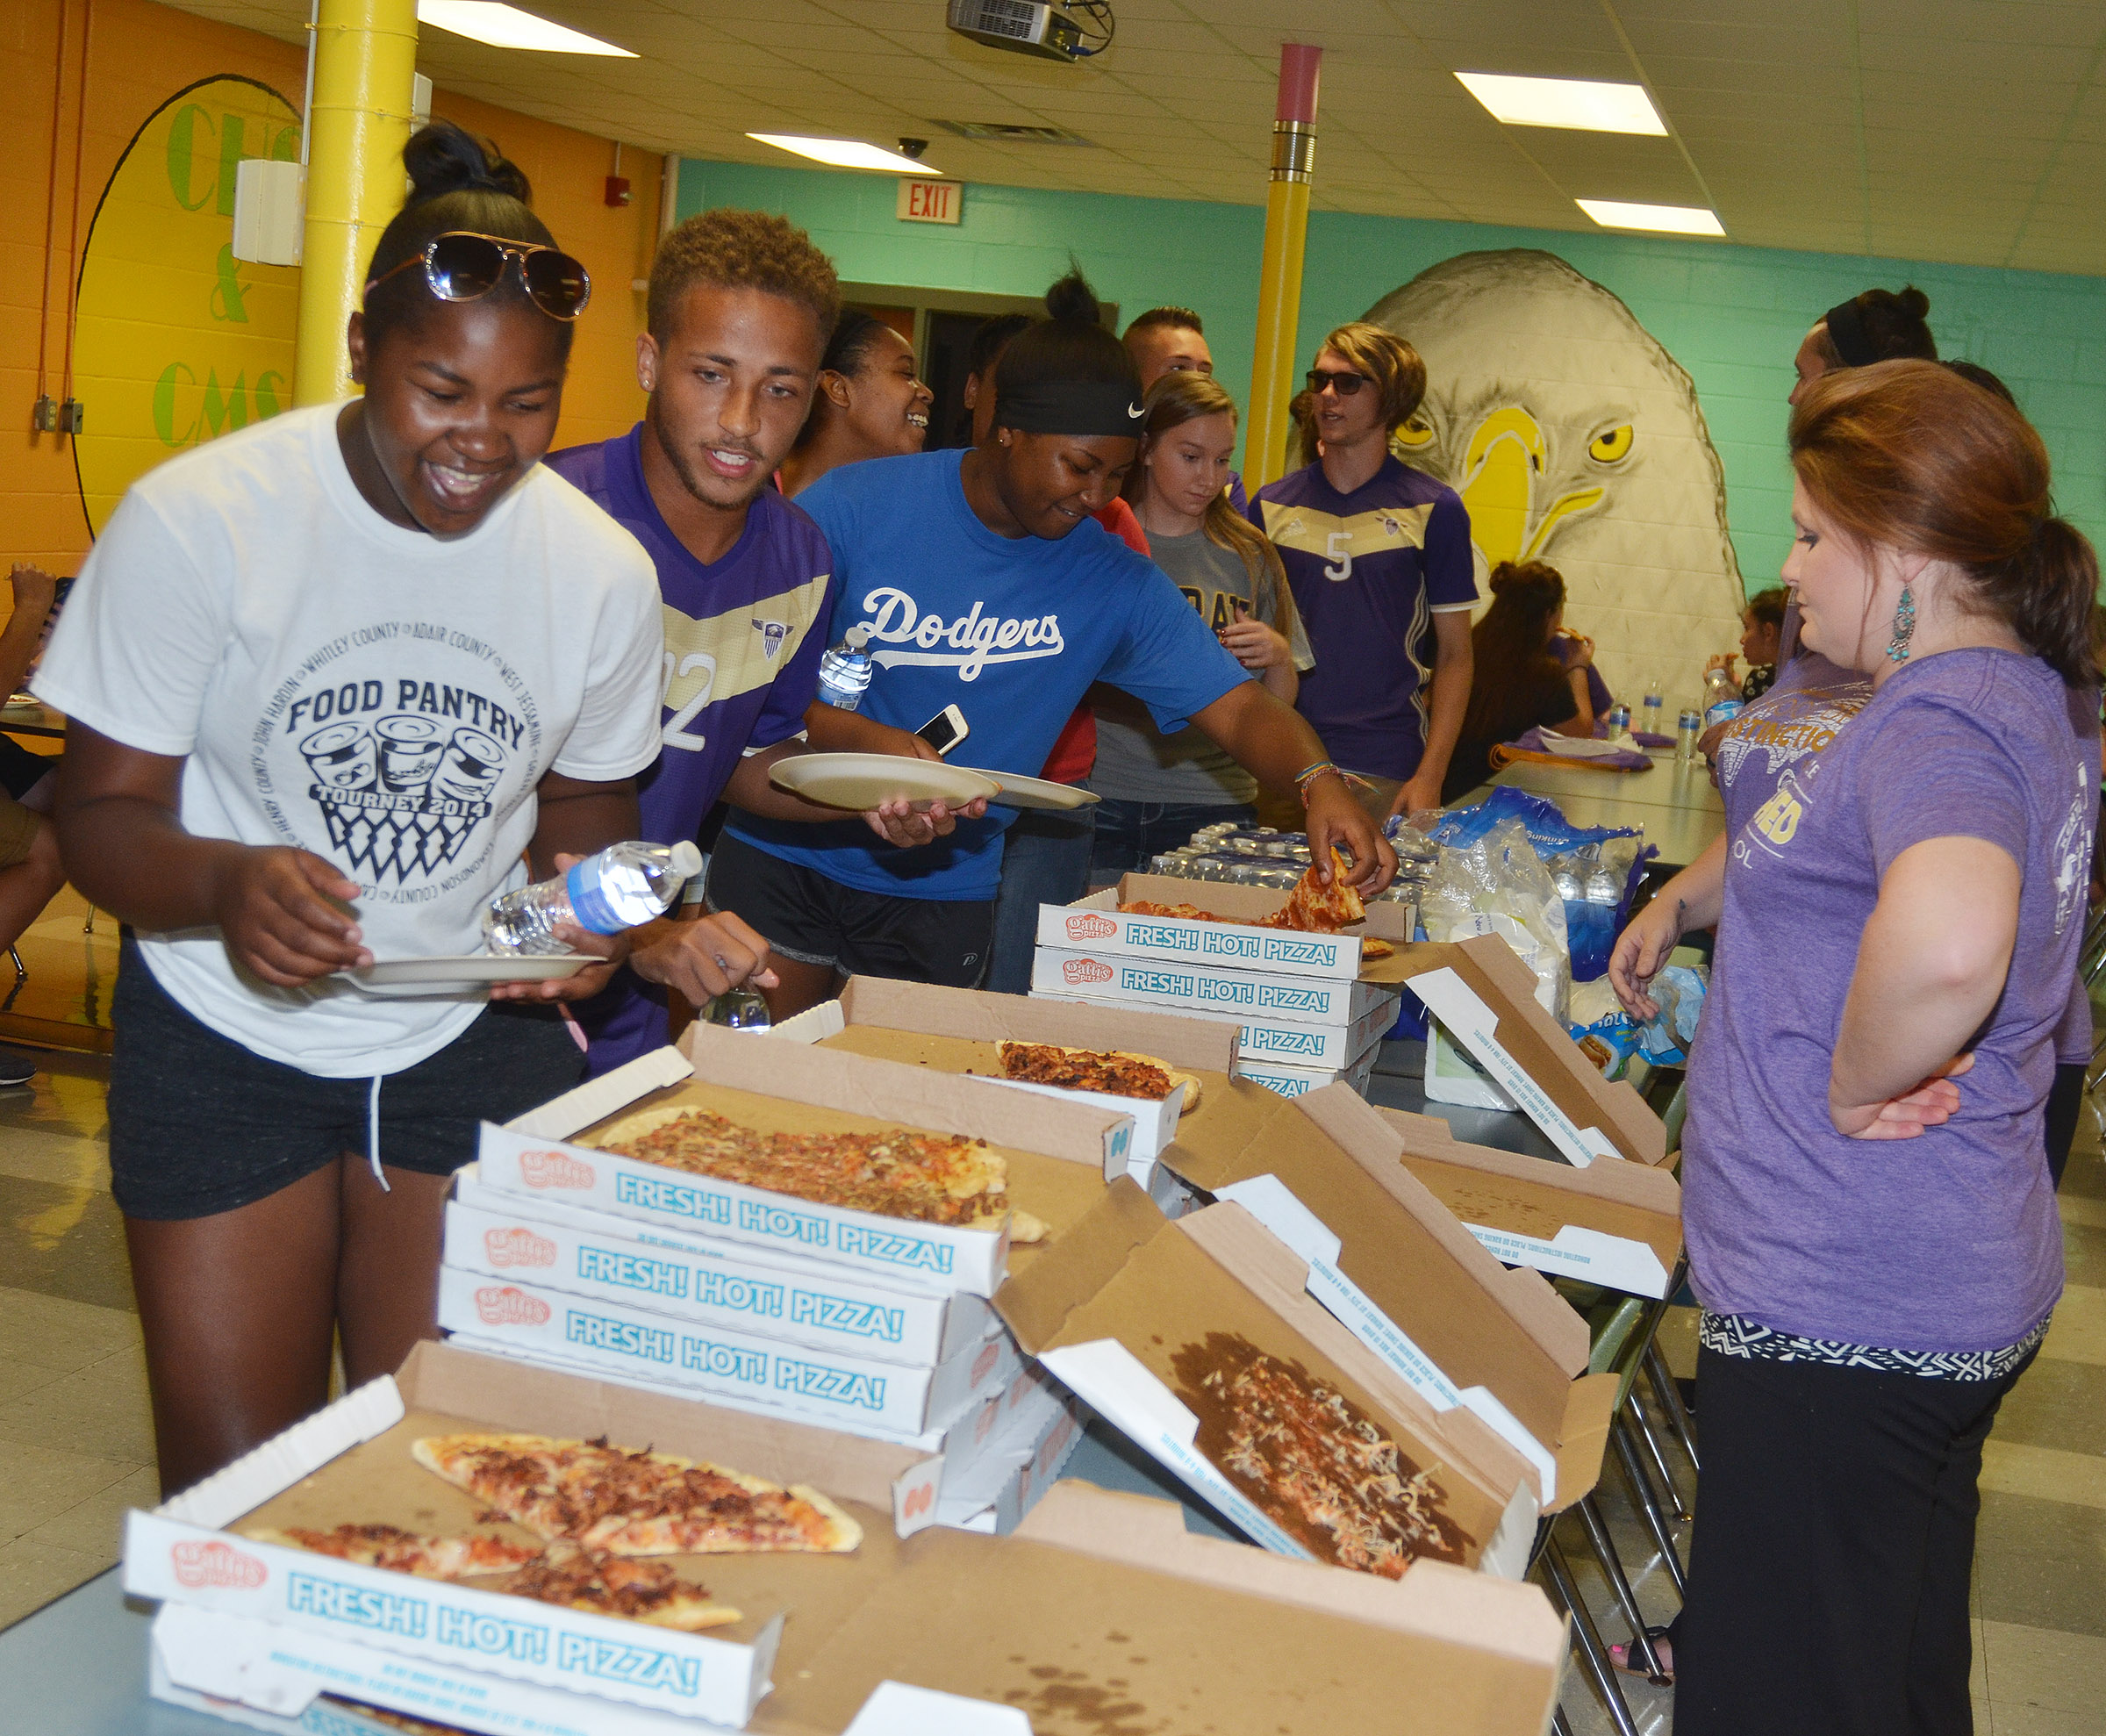 CHS upperclassmen enjoy pizza after their community service project.